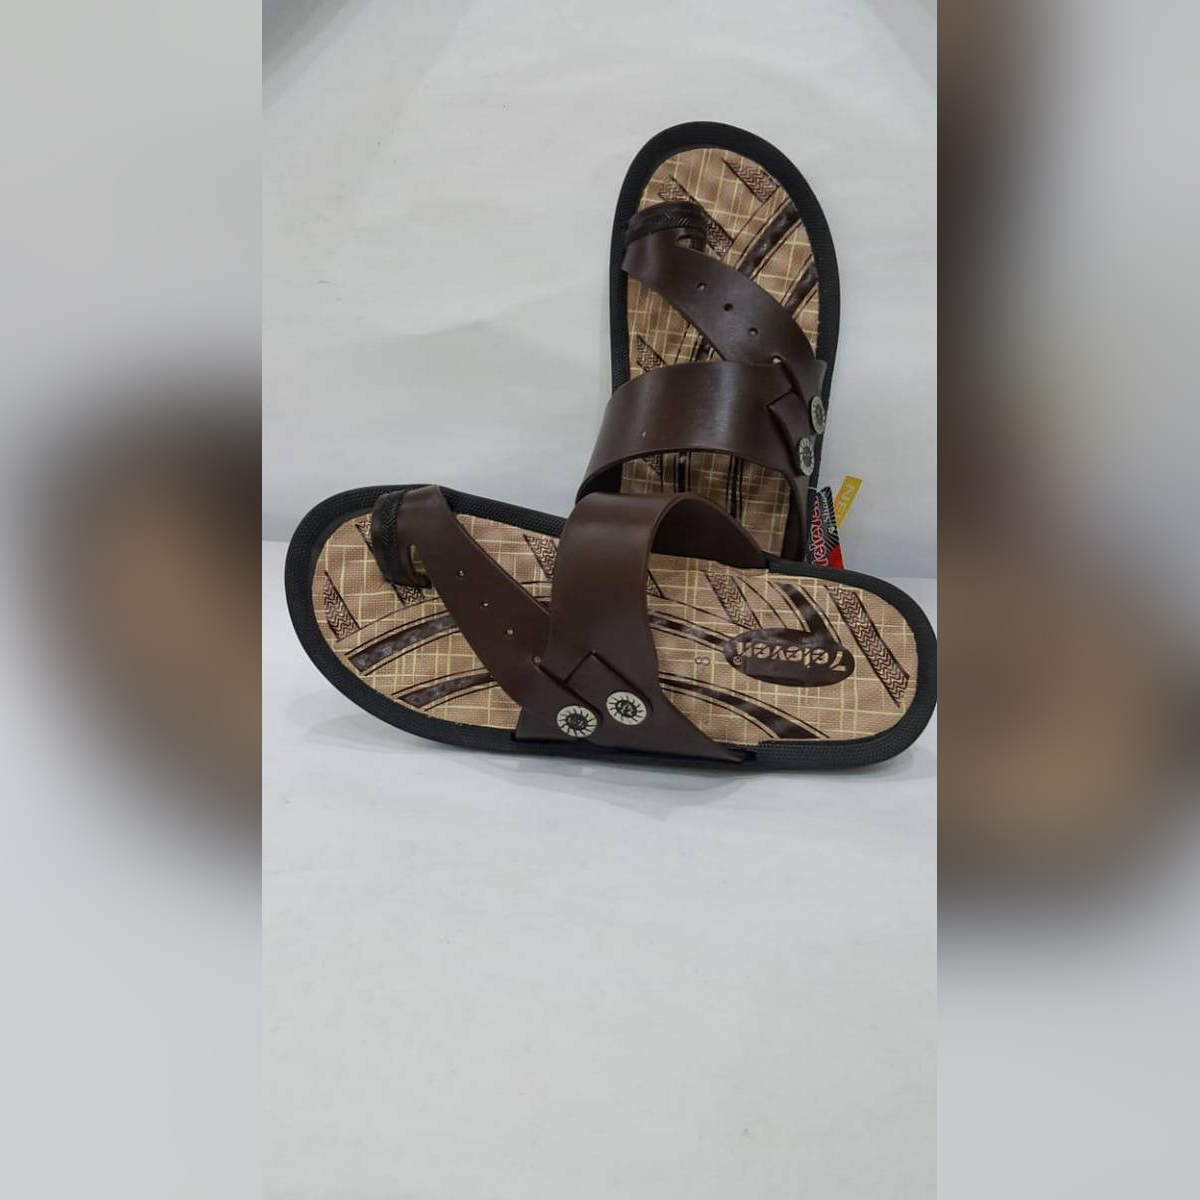 77 ELEVEN CASUAL CHAPPAL FLIPFLOP FOR MEN BROWN IN COLOUR